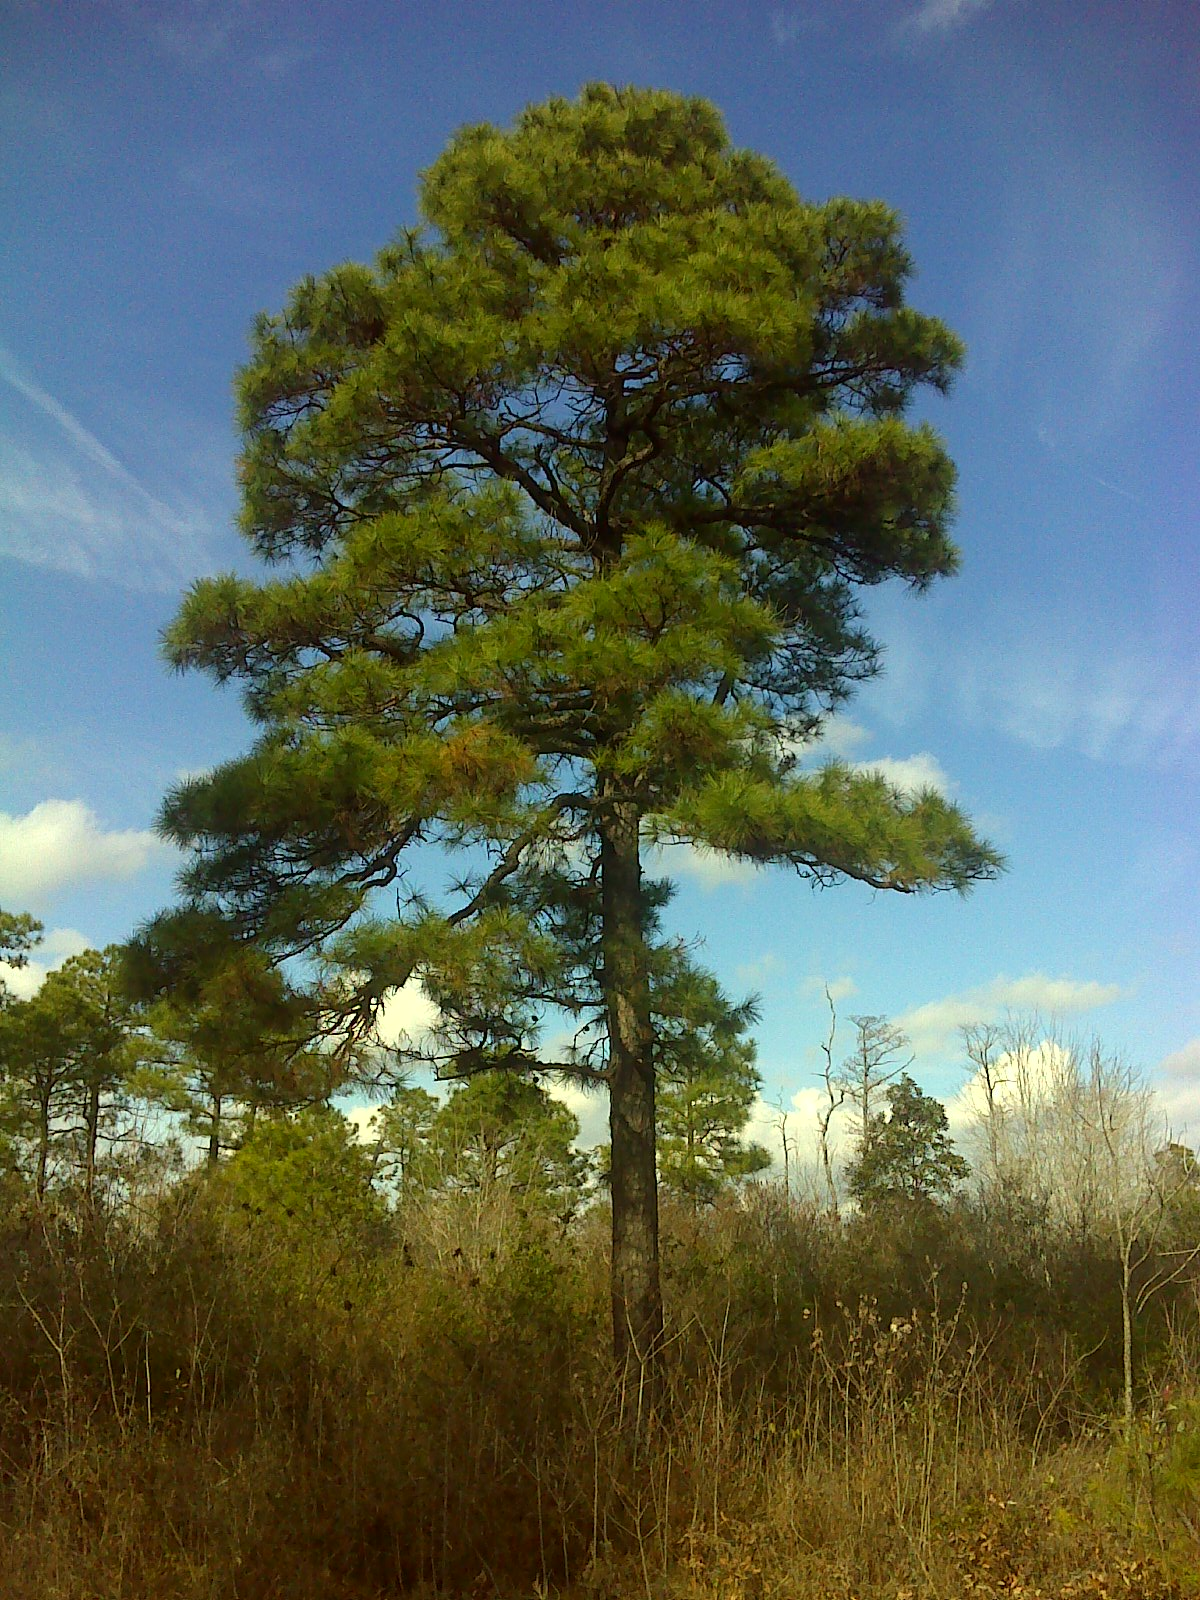 Heart and sole hiking the holly shelter game land mst for Mature pine trees